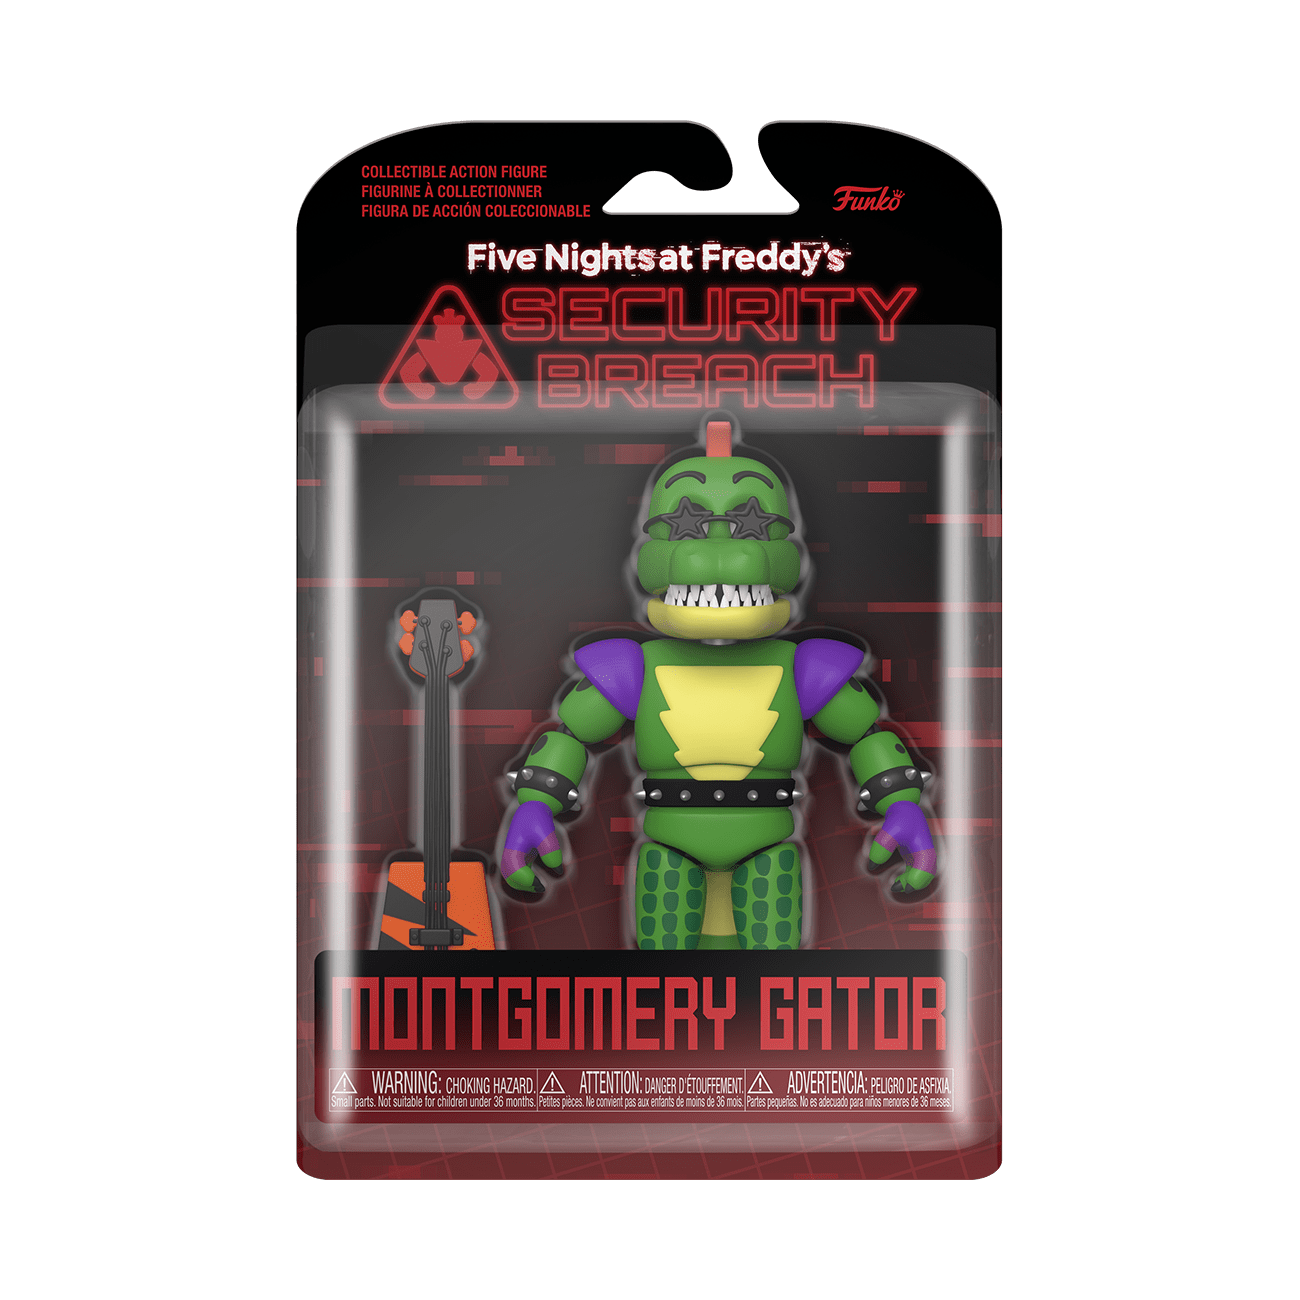 Funko Figura de Accion: Five Nights at Freddys Security Breach - Montgomery Gator